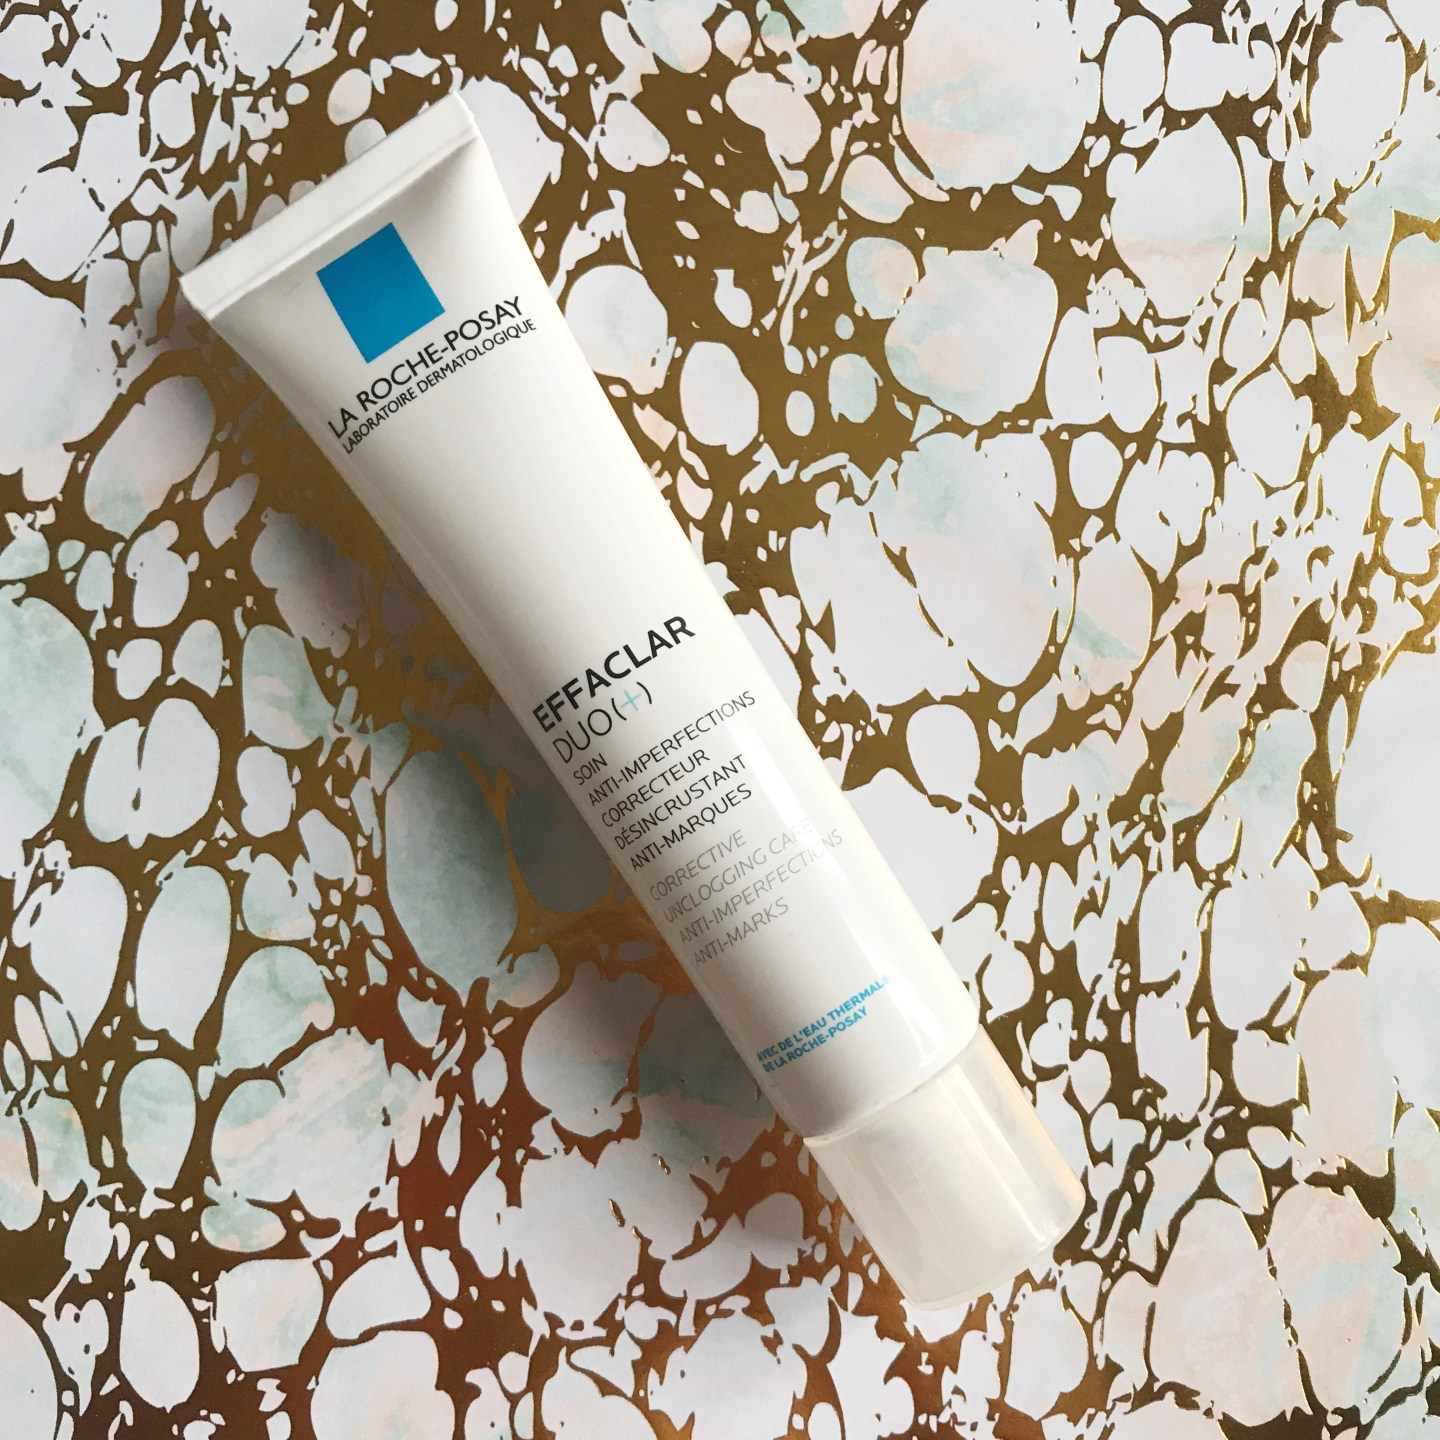 La Roche-Posay Efflaclar Duo (+) | Product Review